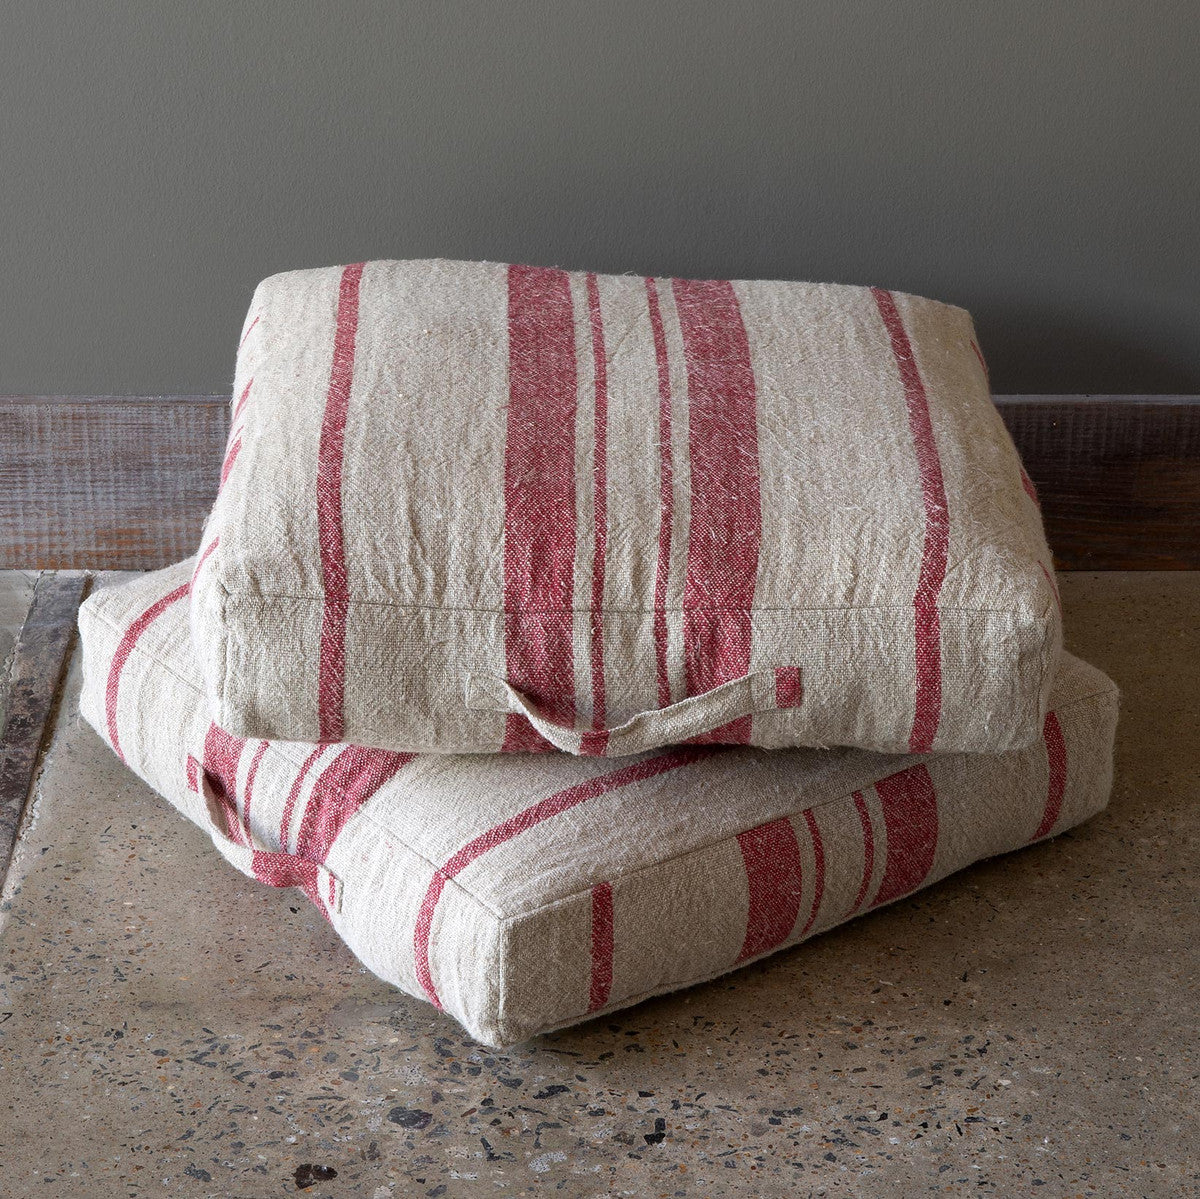 Lovecup Linen Floor Cushion in Natural Red, Set of 2 L170